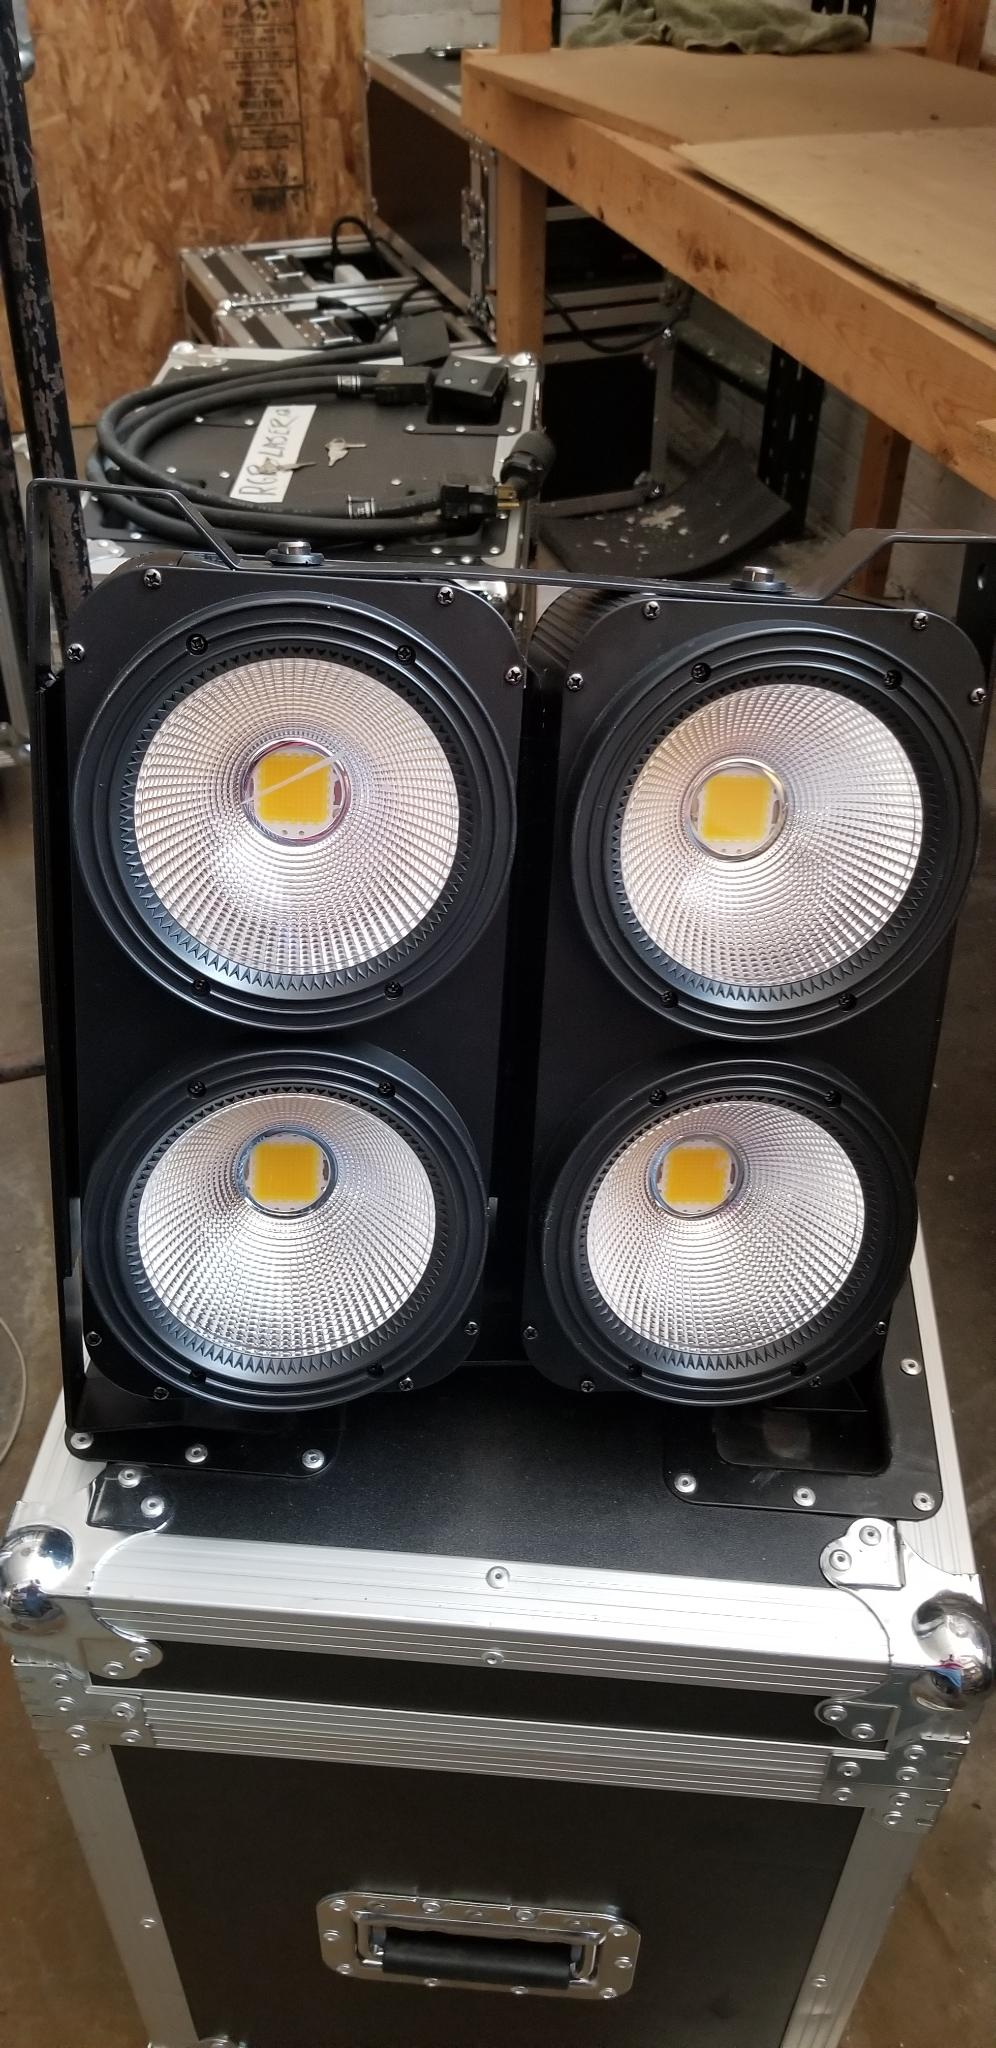 4-100W COB LED Blinder $150